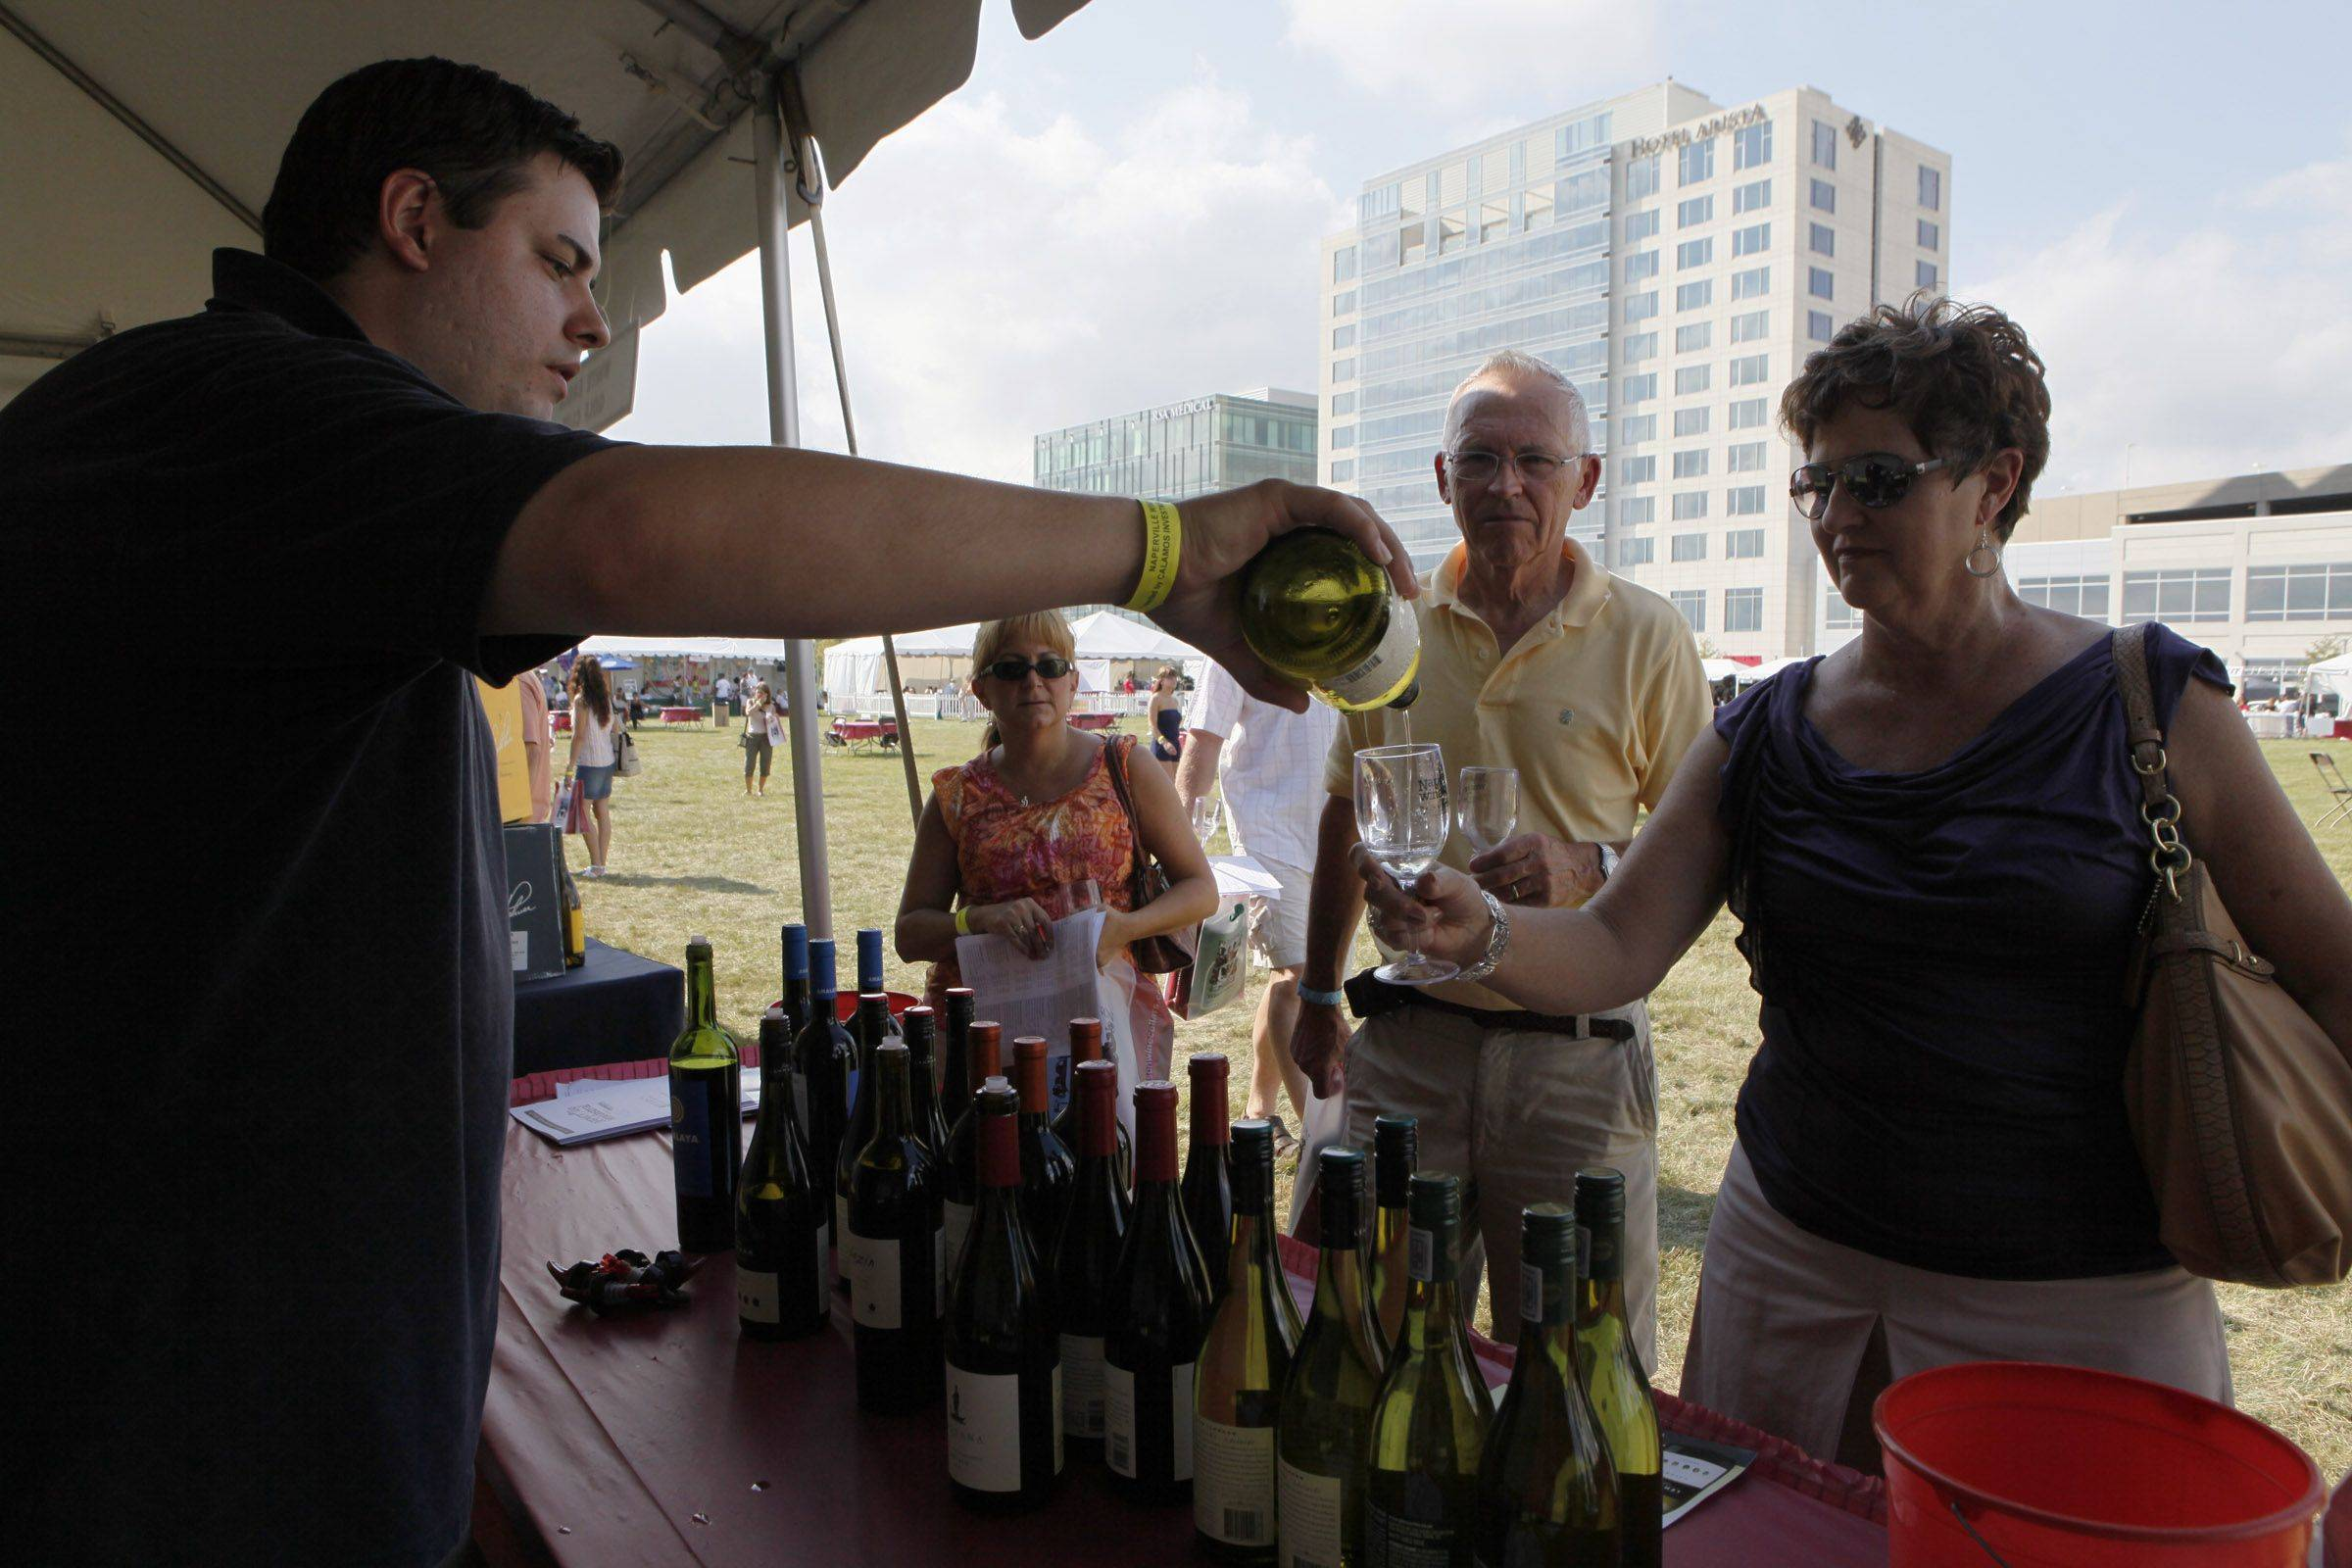 Karen Crawshaw samples one of the many wines available Saturday at the Naperville Wine Festival at CityGate Centre with her husband, Claude. John Redmond, who represents Heritage Wine Cellars, got into wine because he had a passion for it.